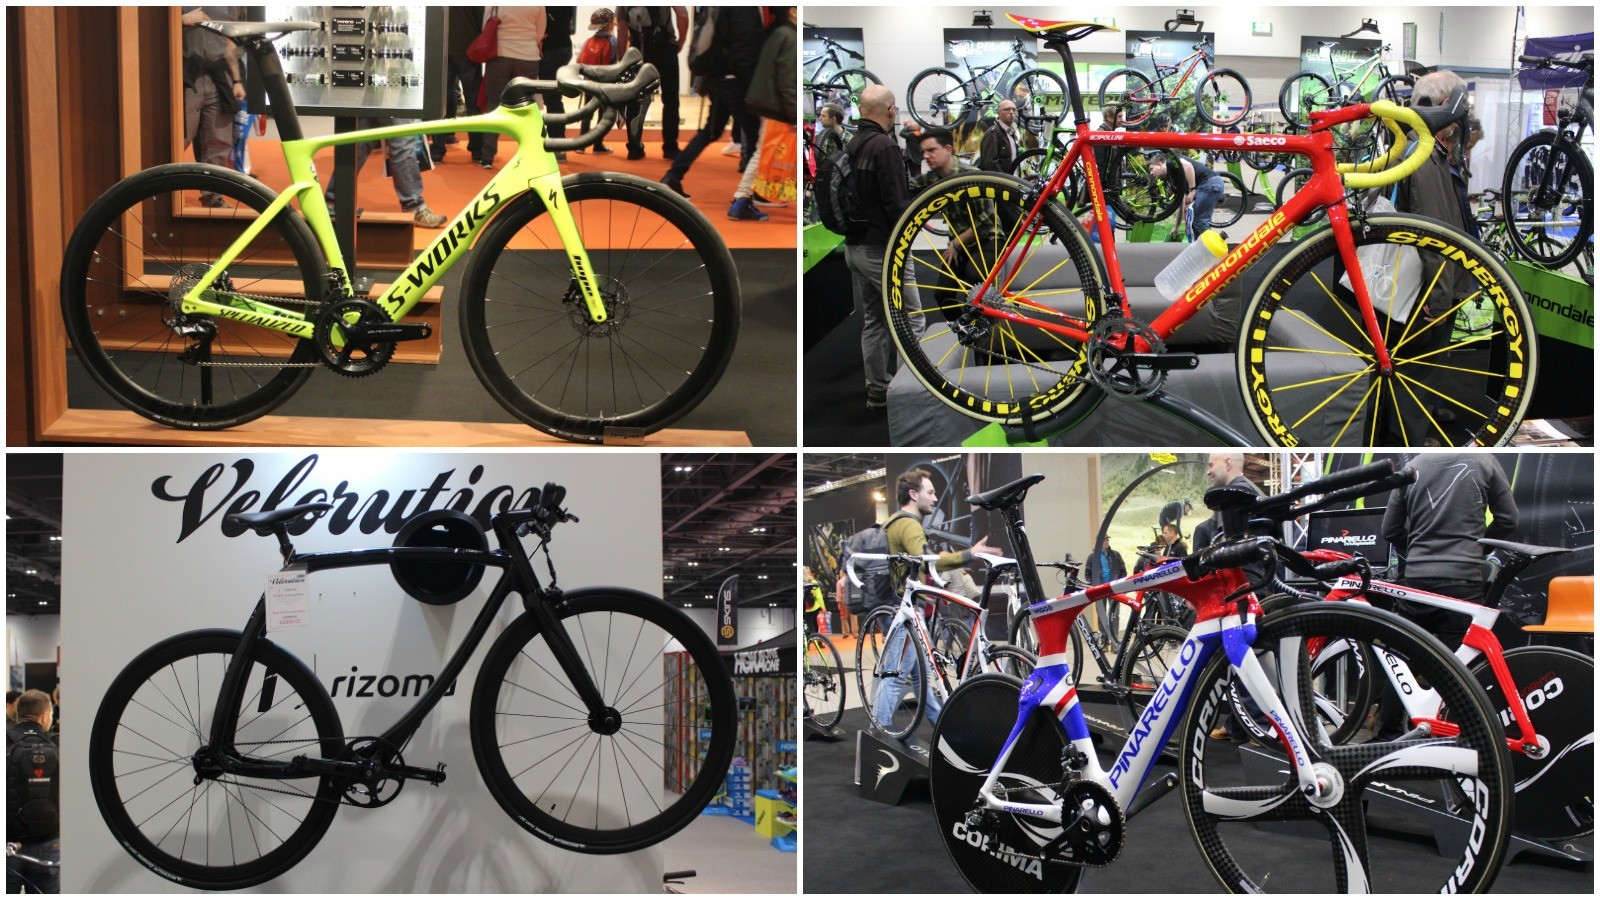 The London Bike Show 2017